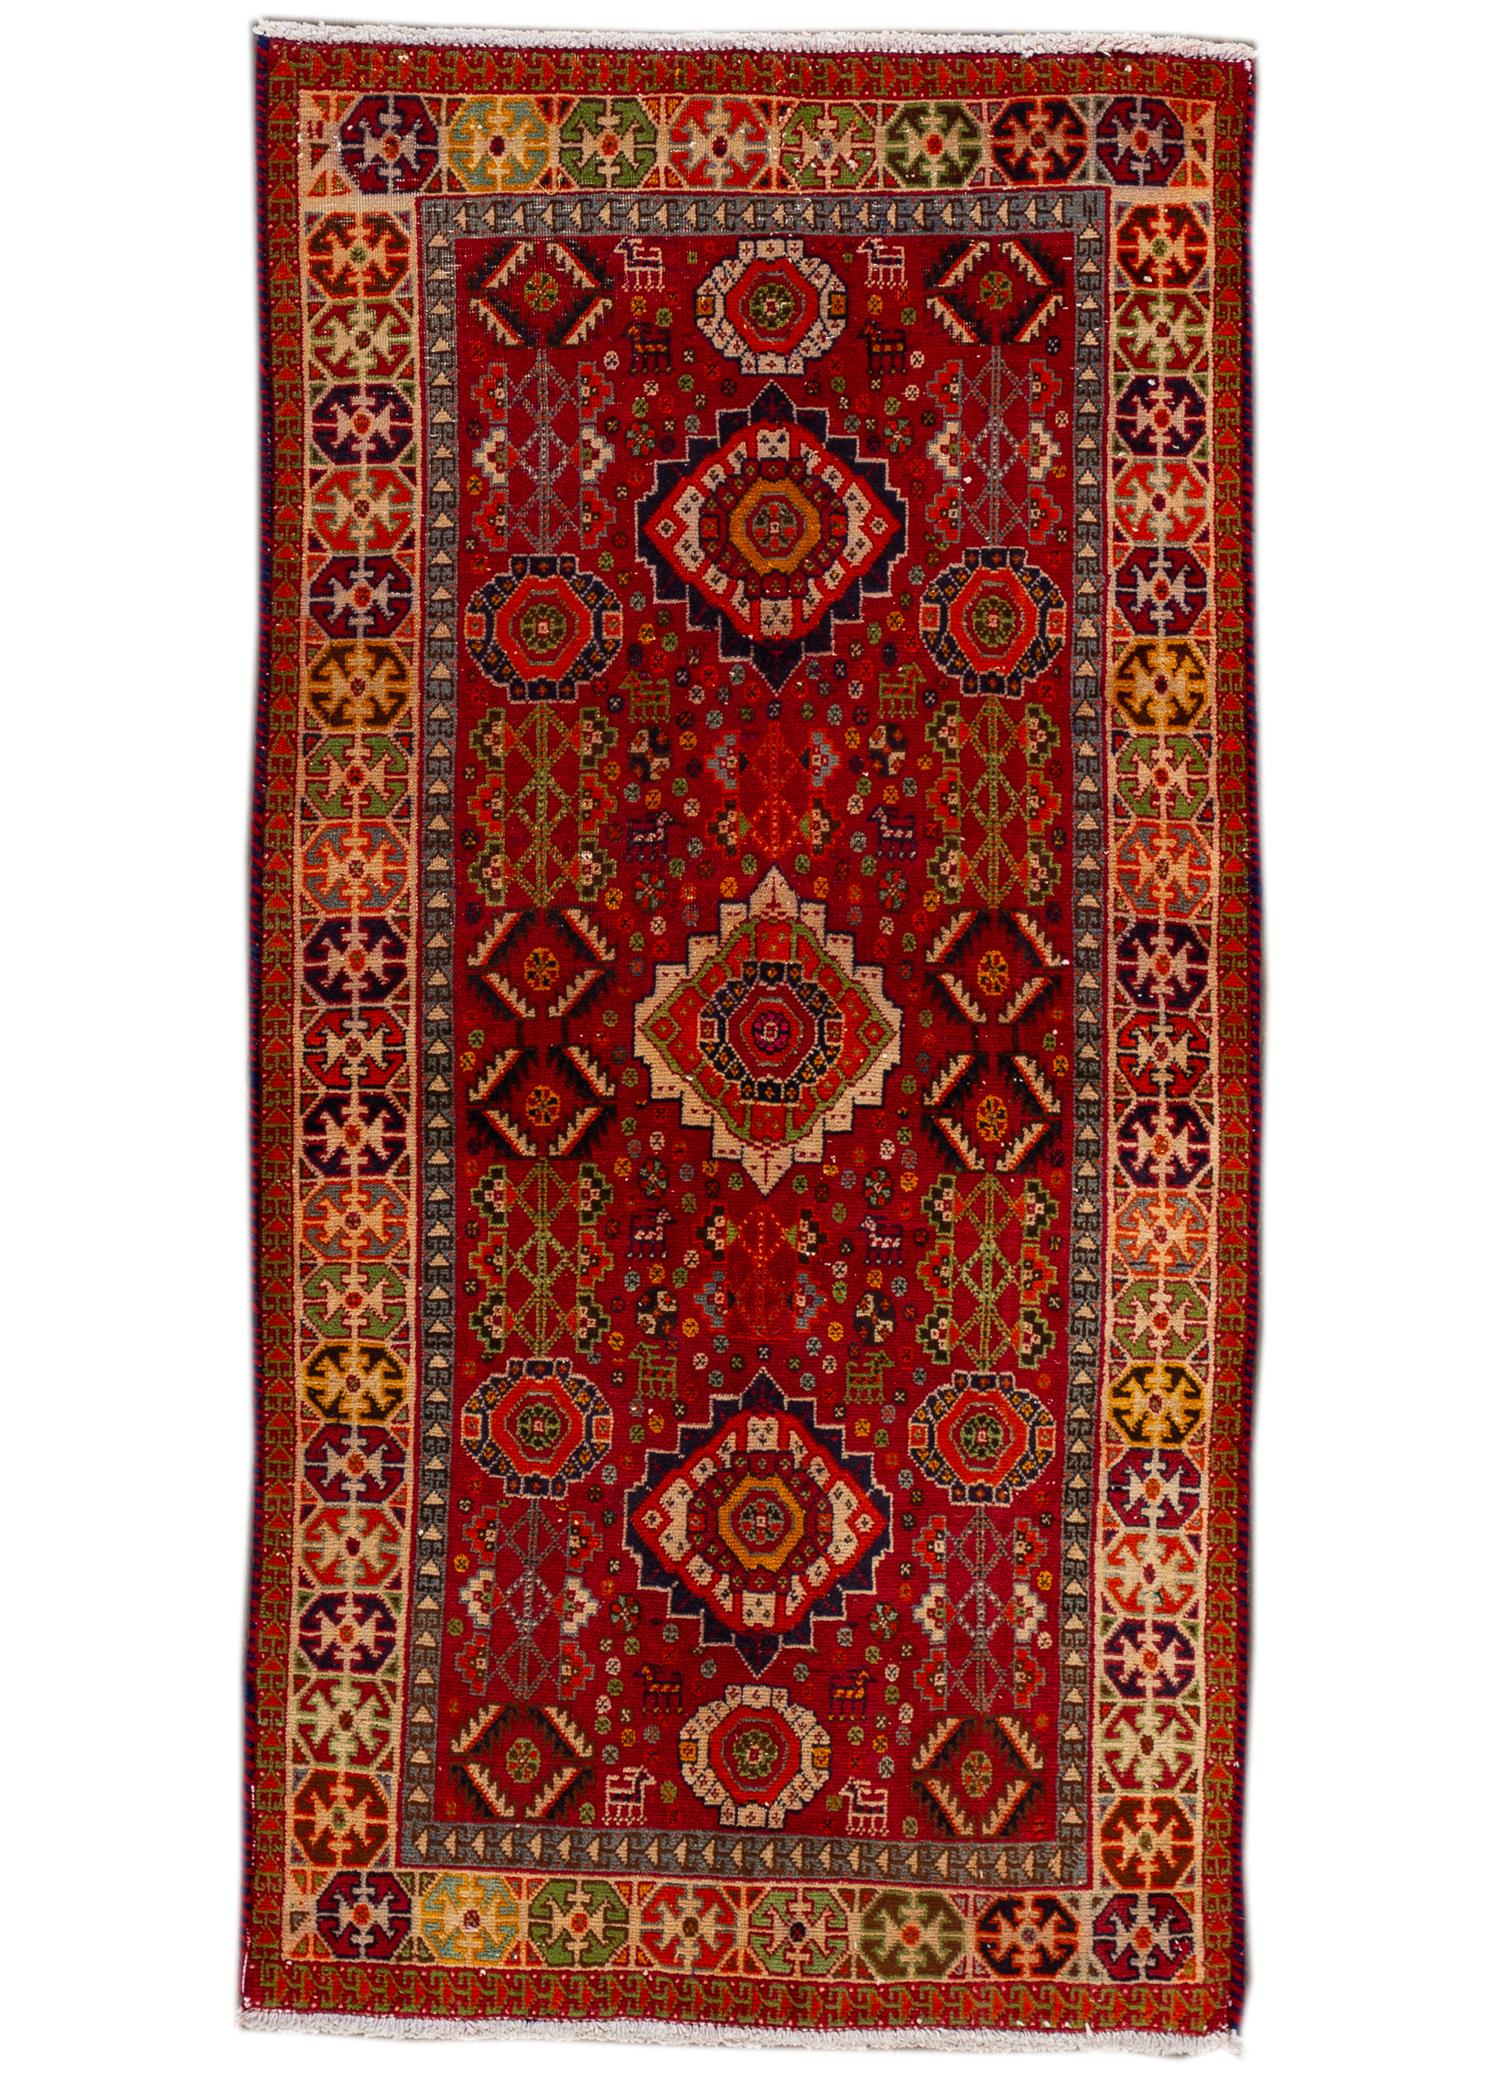 Late 20th Century Antique Heriz Persian Rug 3' x 5'